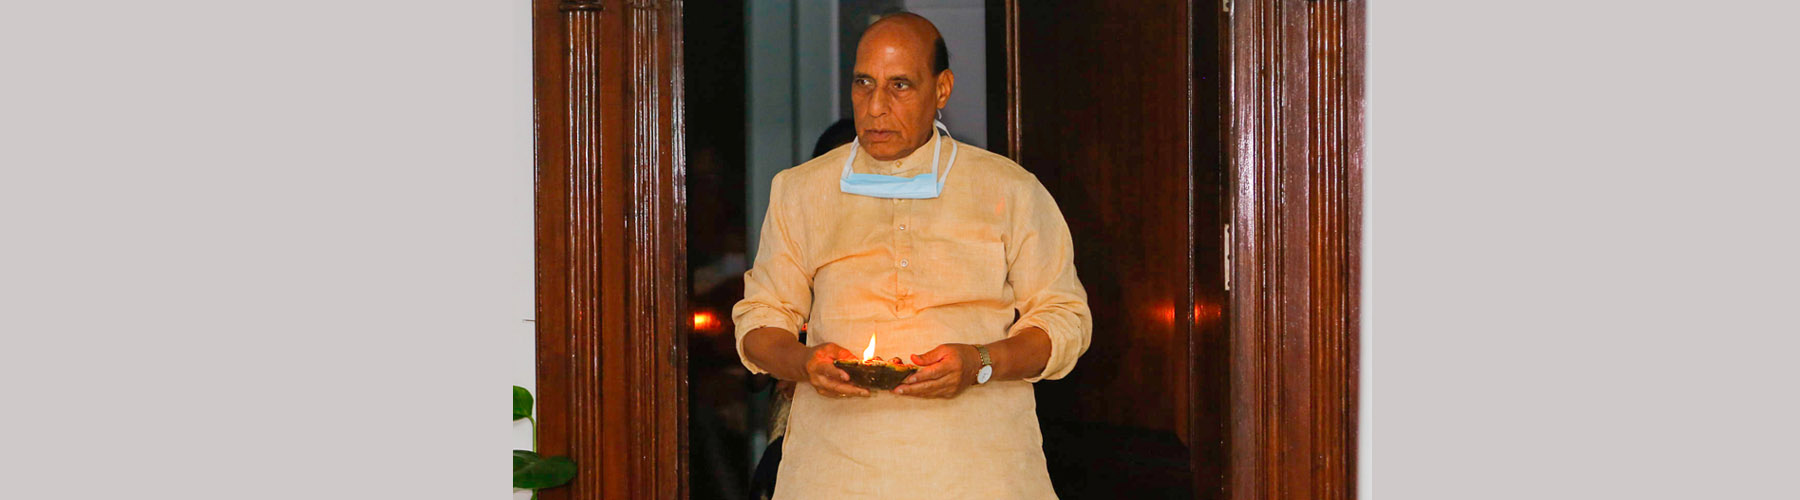 Raksha Mantri Shri Rajnath Singh joins the nation by lighting lamps for nine minutes at 09:00 PM expressing his solidarity to fight COVID-19, on a call given by Prime Minister Shri Narendra Modi, in New Delhi on Sunday, April 05, 2020